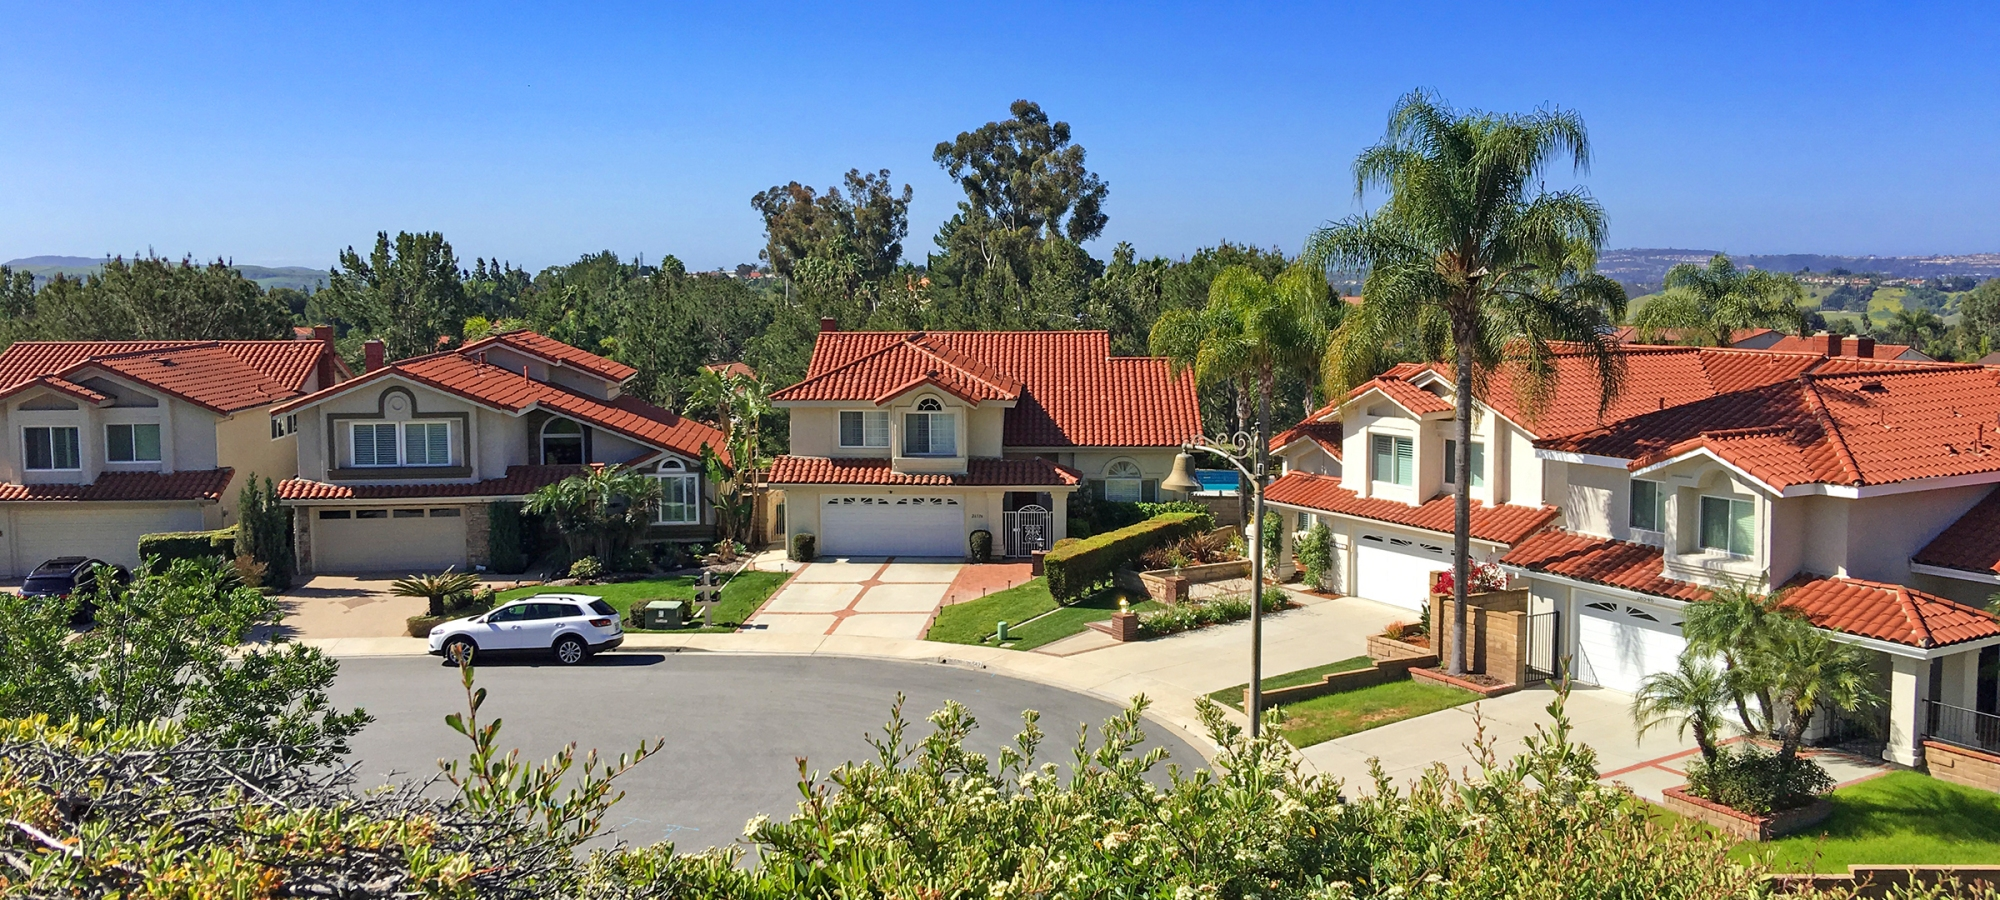 Orange County Homes Market Values